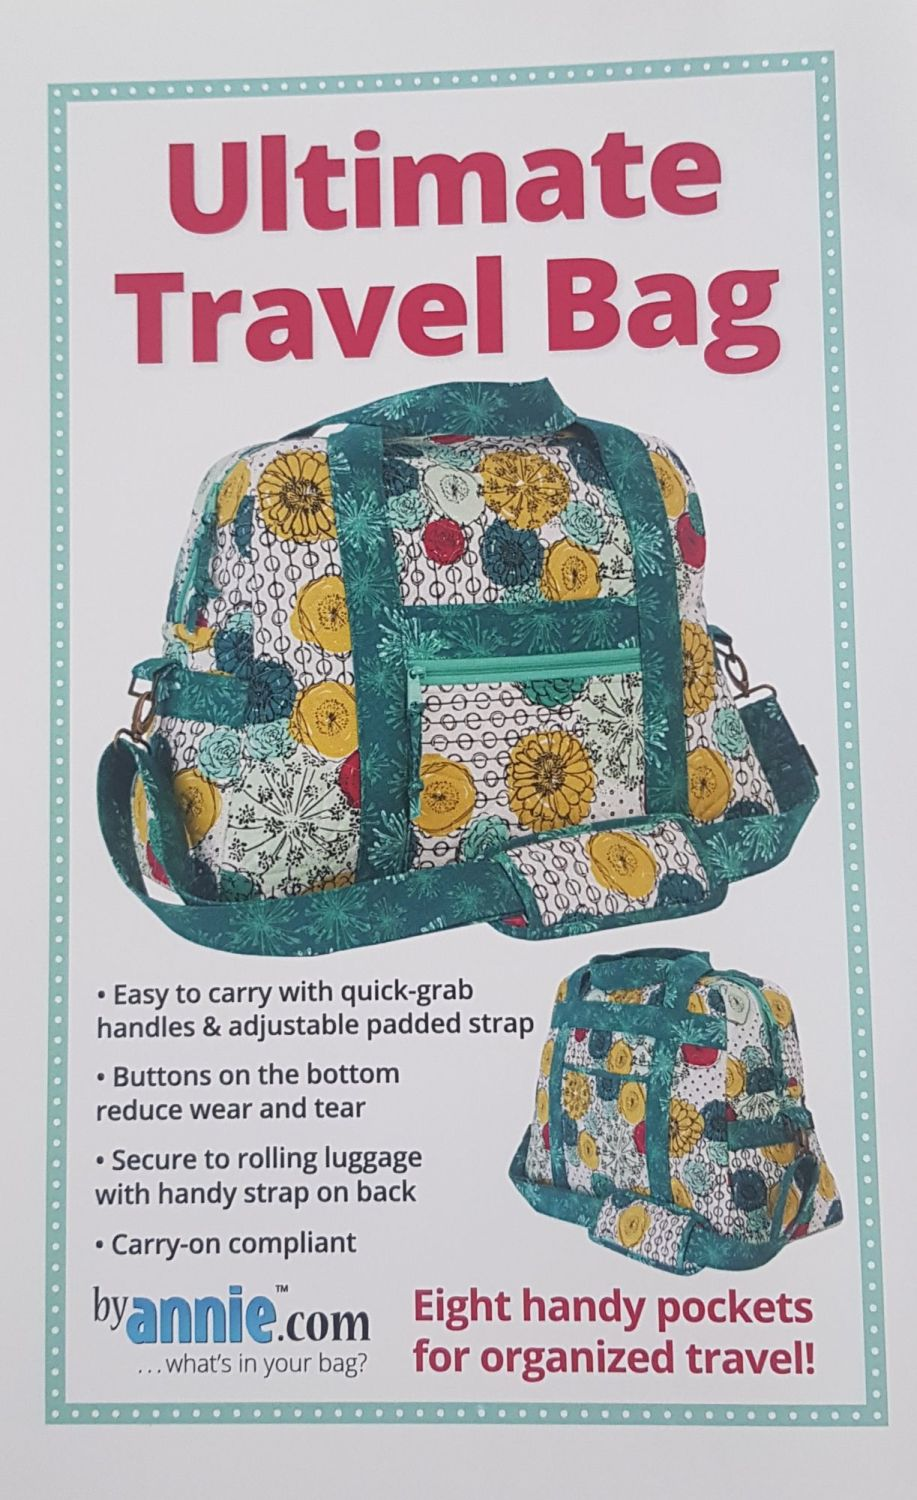 Ultimate Travel Bag Pattern by annie.com